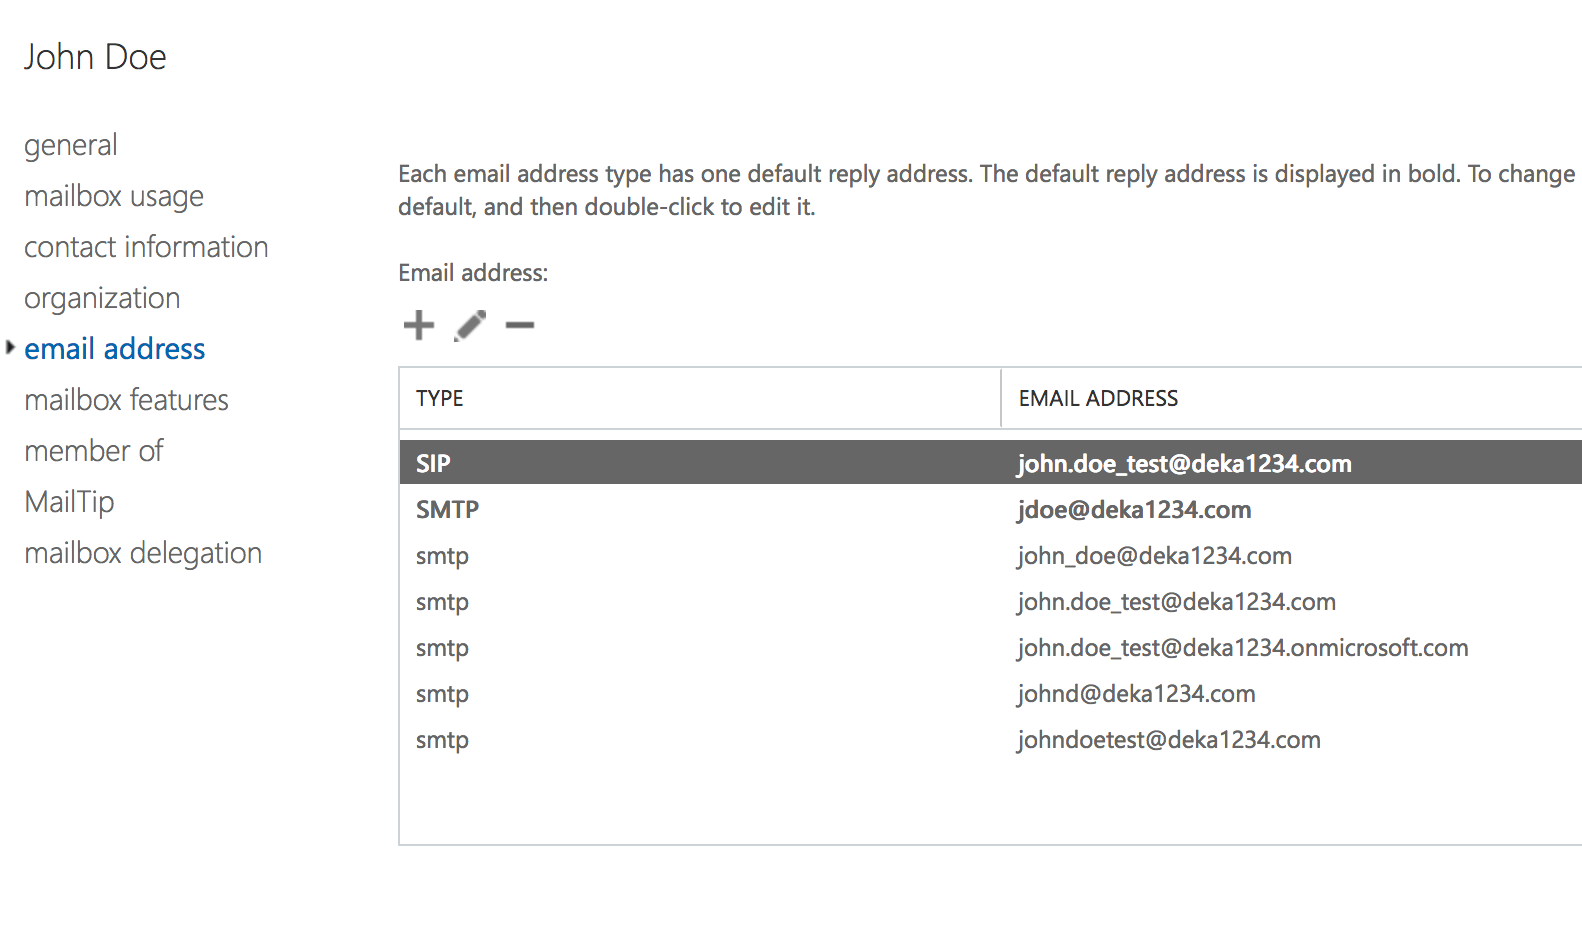 How to map proxy addresses from user's application profile